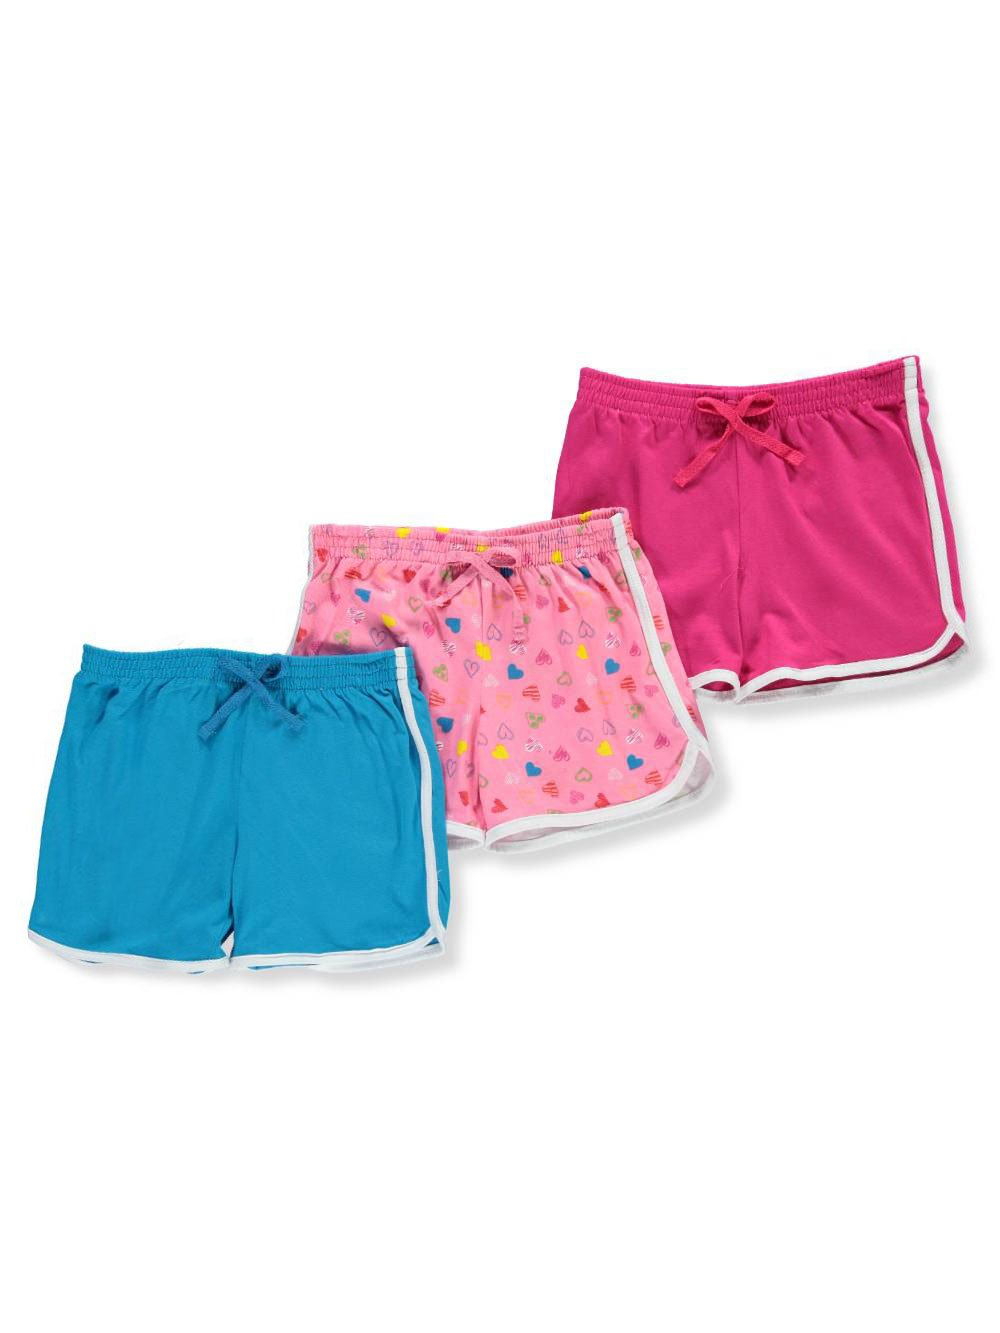 Pink Dot Girls' 3-Pack Shorts 2t